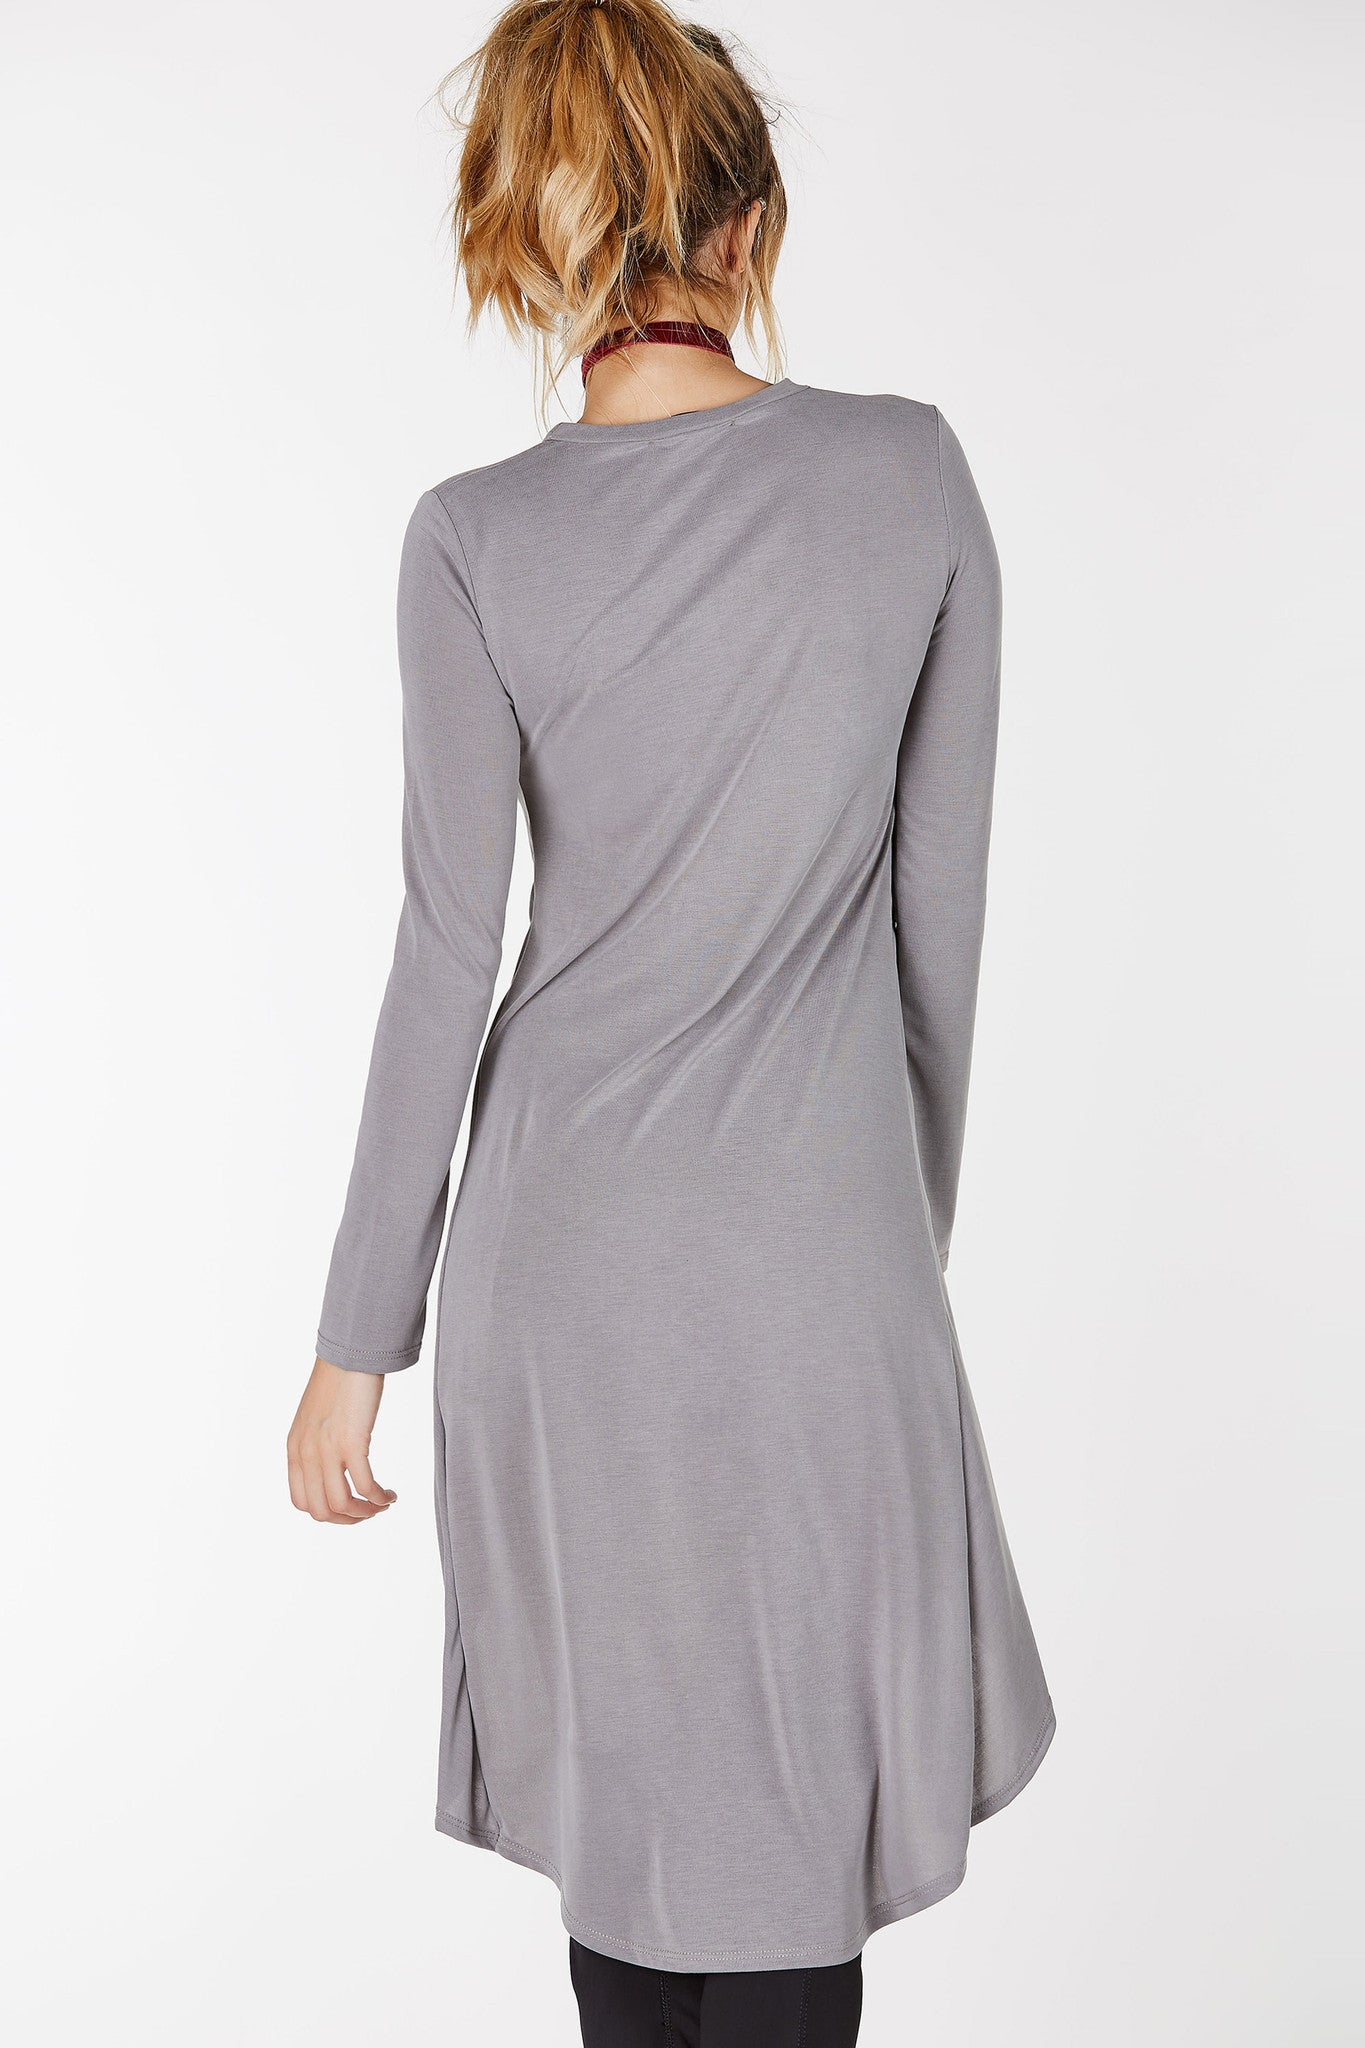 Crew neckline long sleeve maxi top with hi-low hem and knot detailing at center.